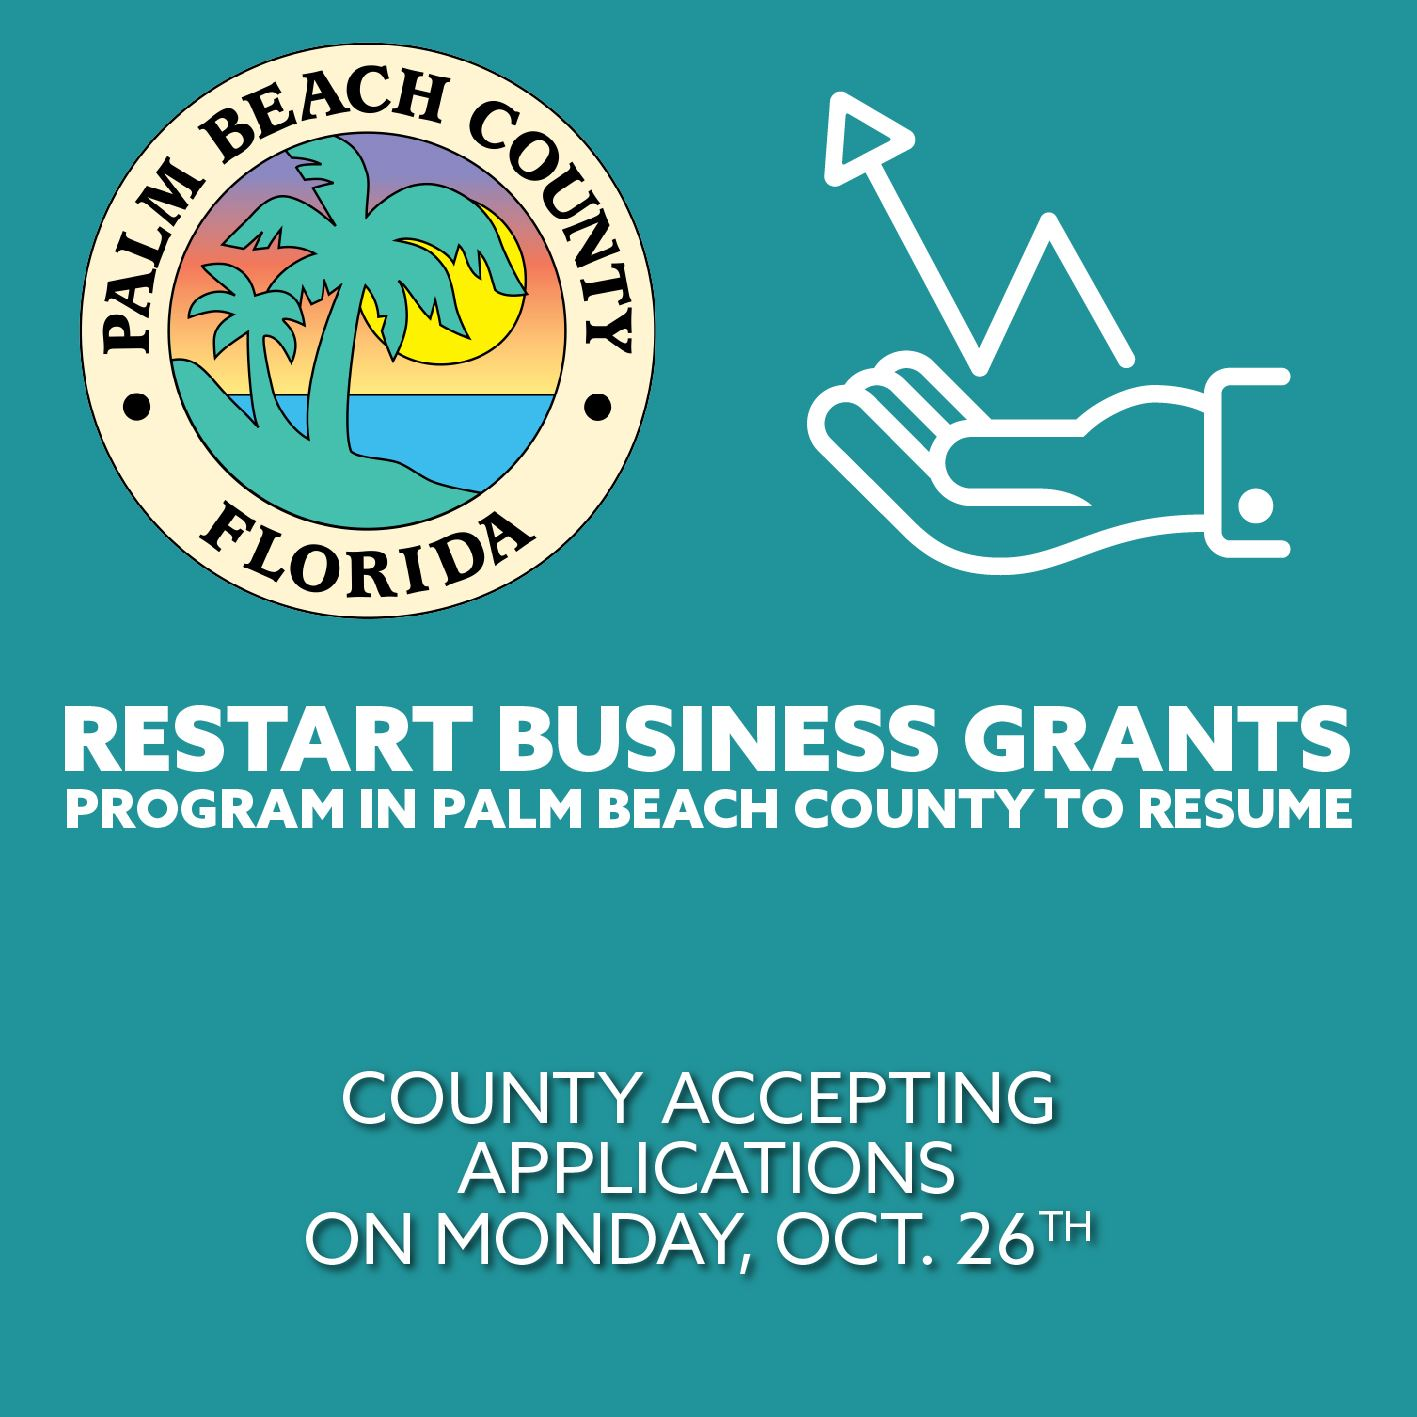 County Restart Business Grants Program accepting applications on October 26, 2020.